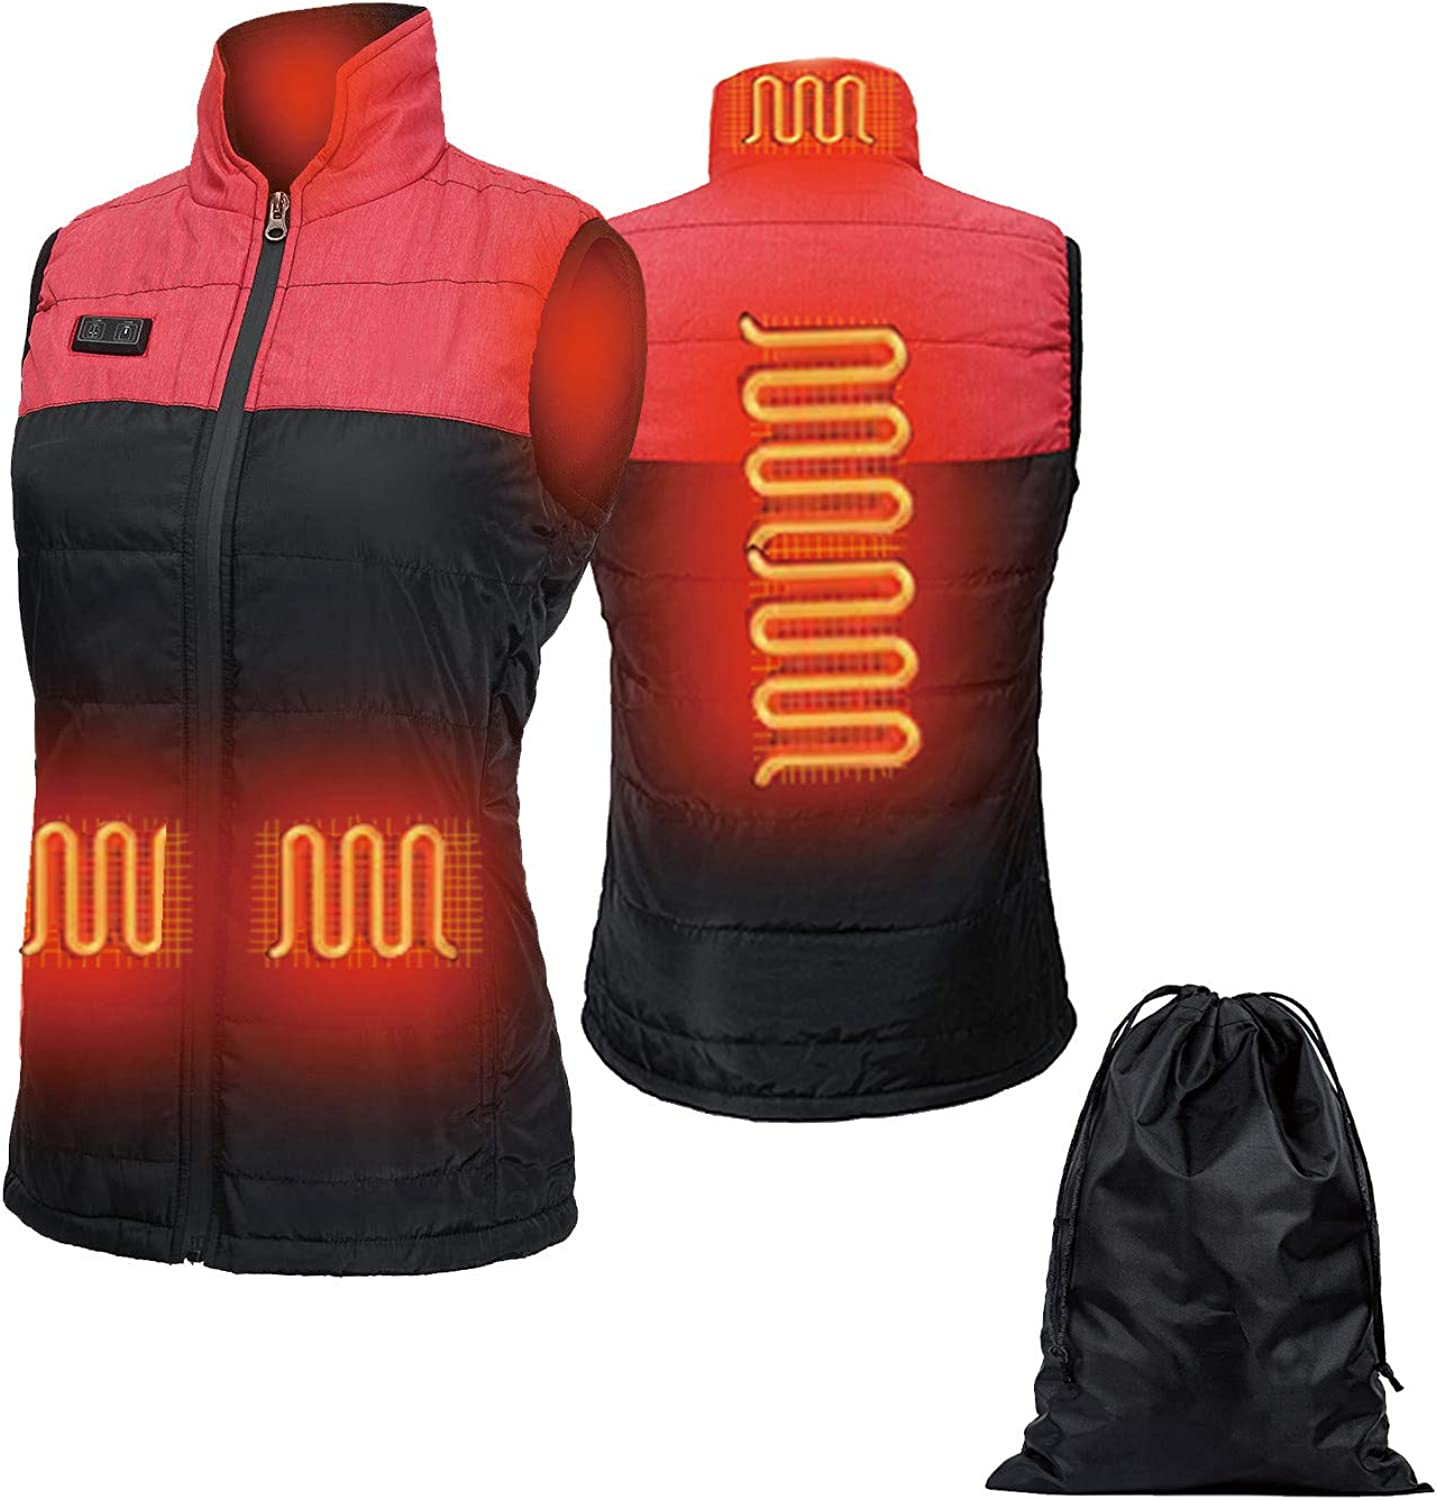 Heated Vest for Women, Lightweight Winter Warm Vests with USB Insert for Outdoor Activities: Clothing